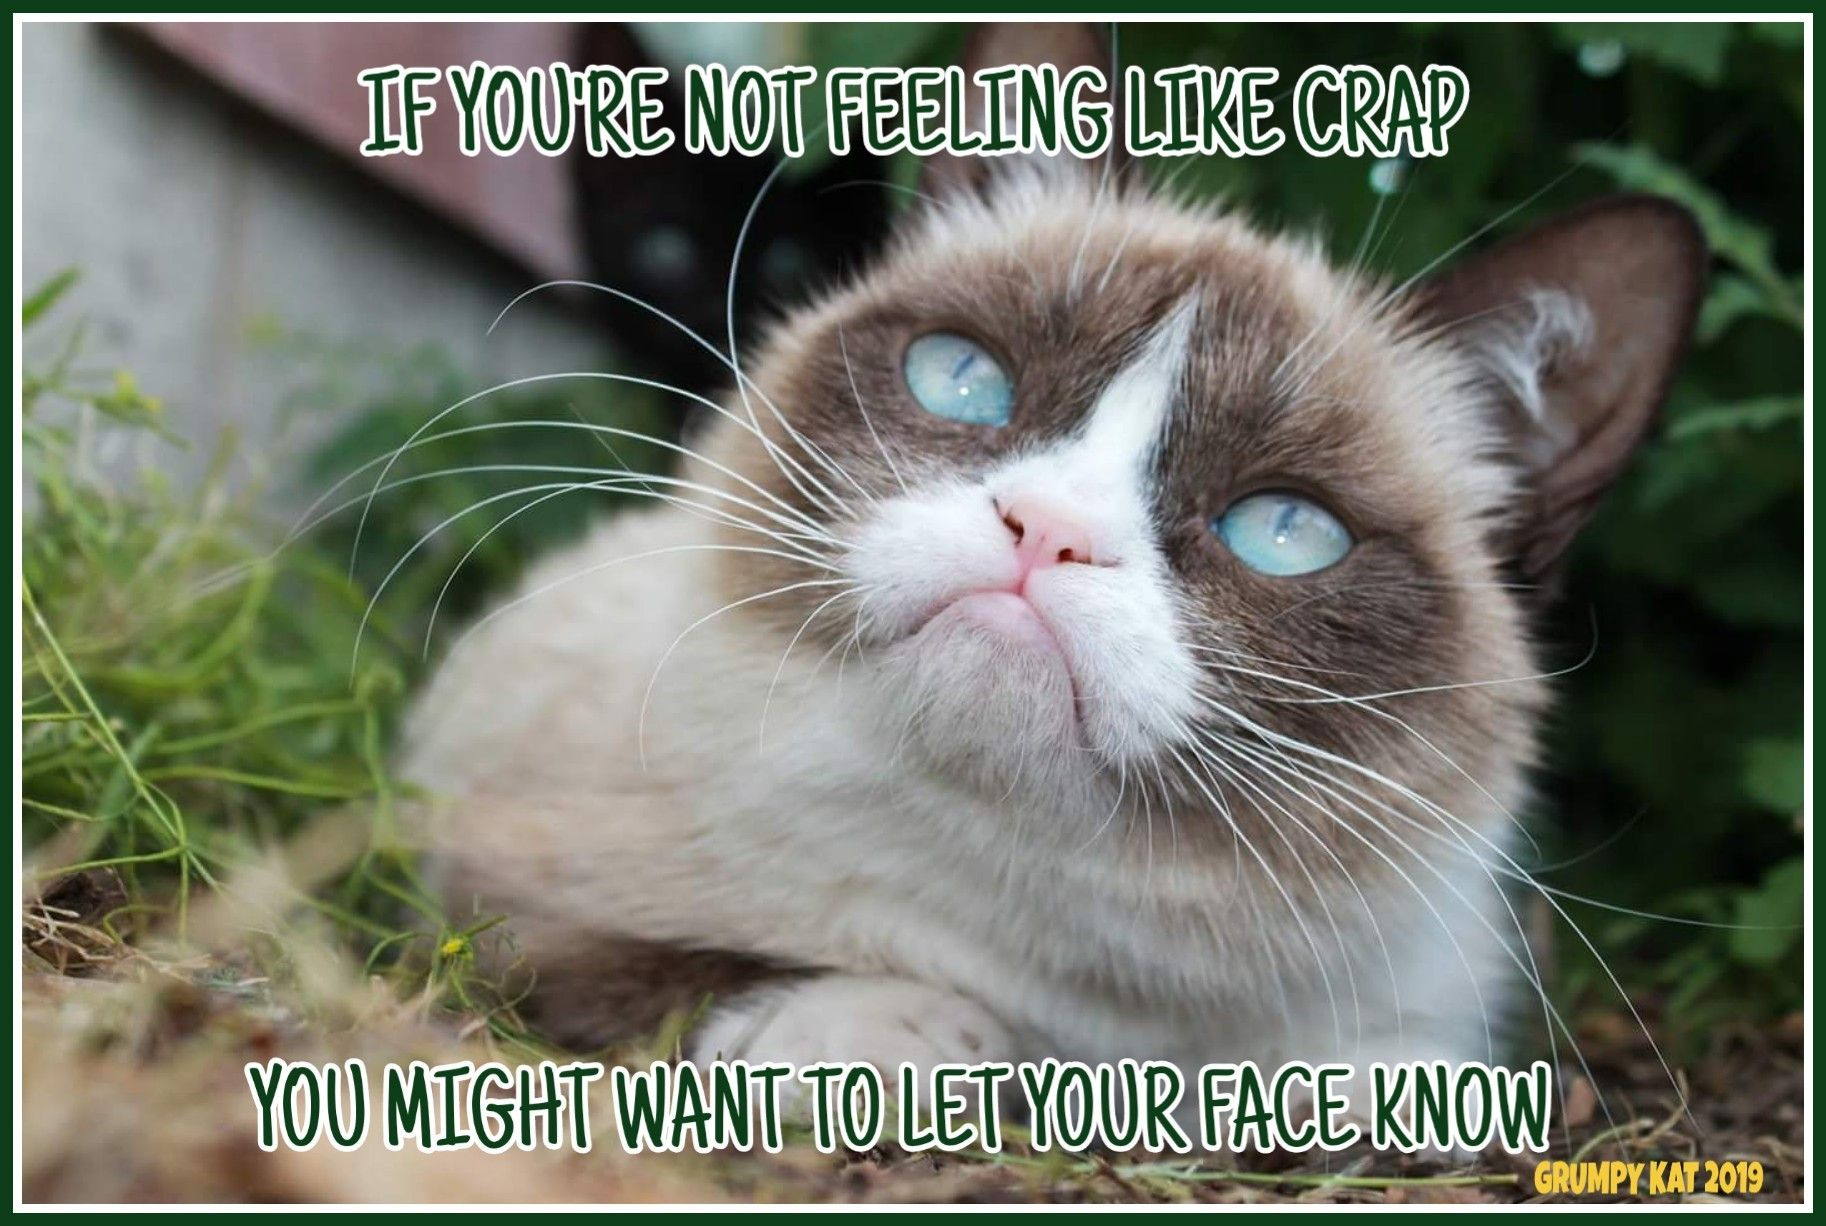 Another Grumpy Cat Meme By The Other Grumpy Kat 2019 Did